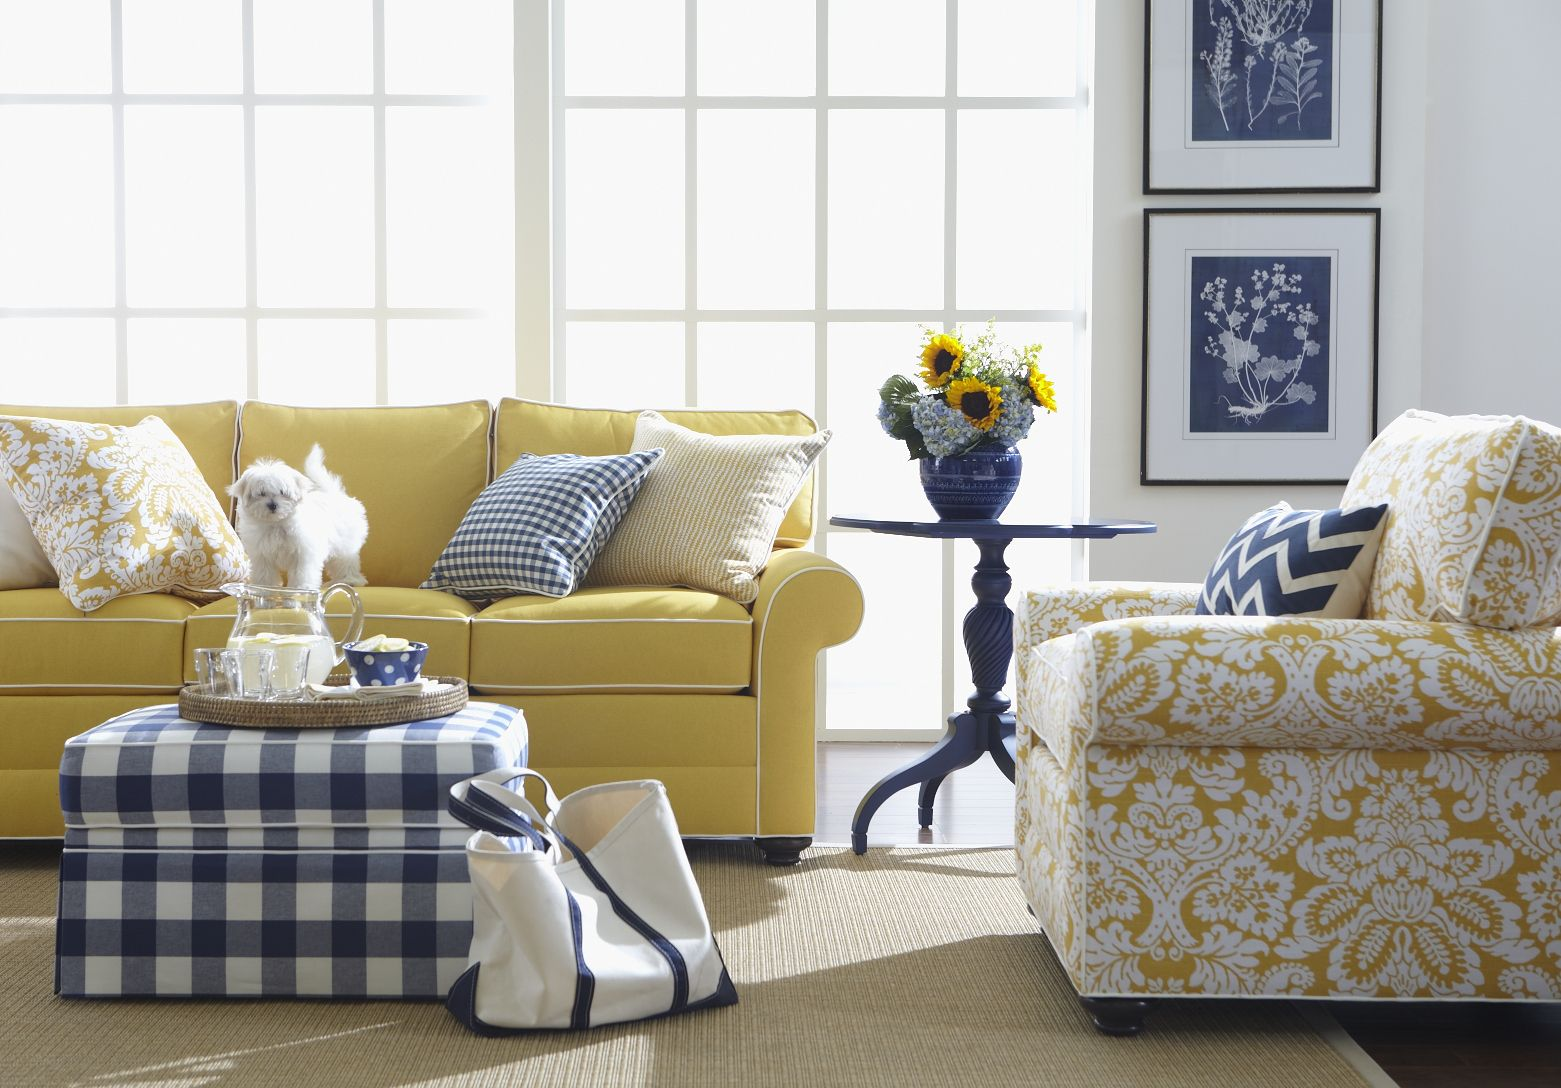 Even Our Furry Friends Love The Cheerful Fabric On Our